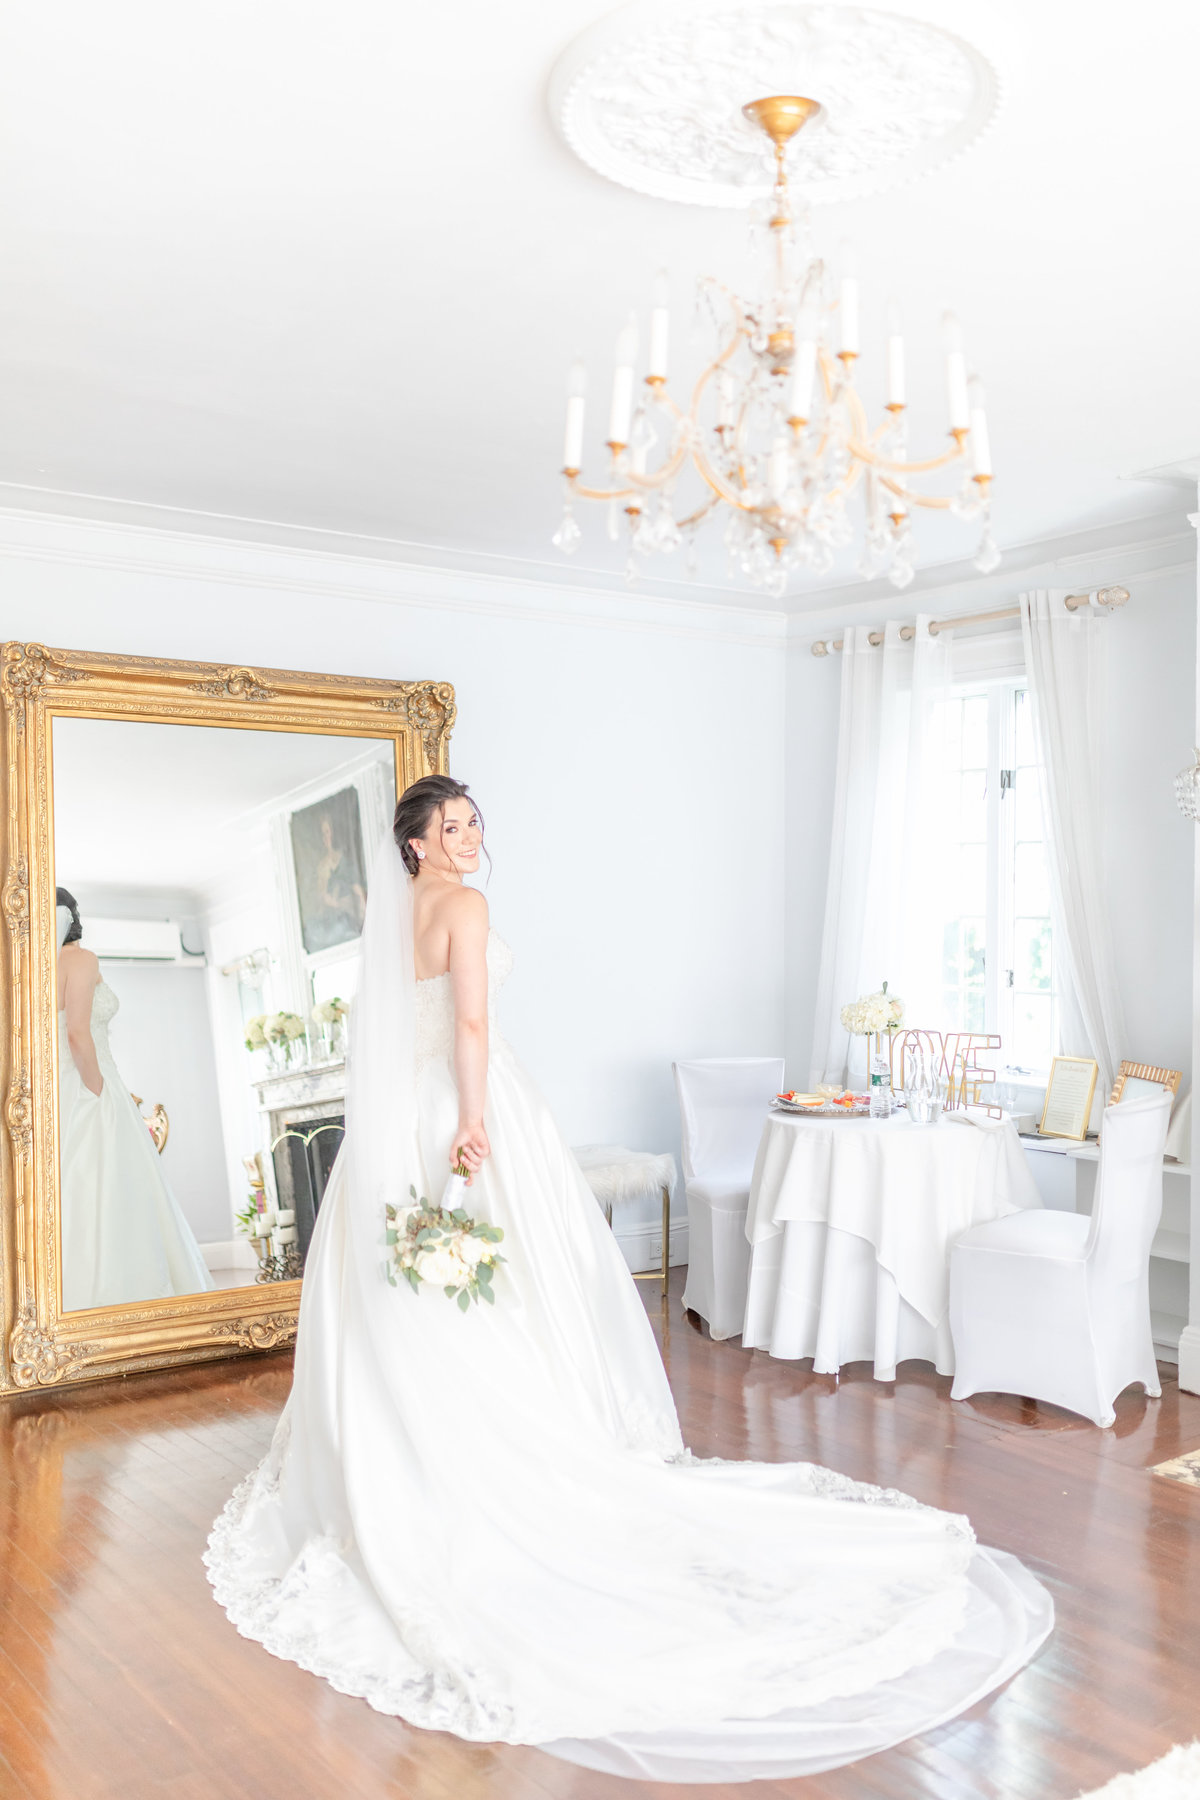 Briarcliff Manor wedding bride getting ready captured by NJ wedding photographer Diana & Korey Photo and Film